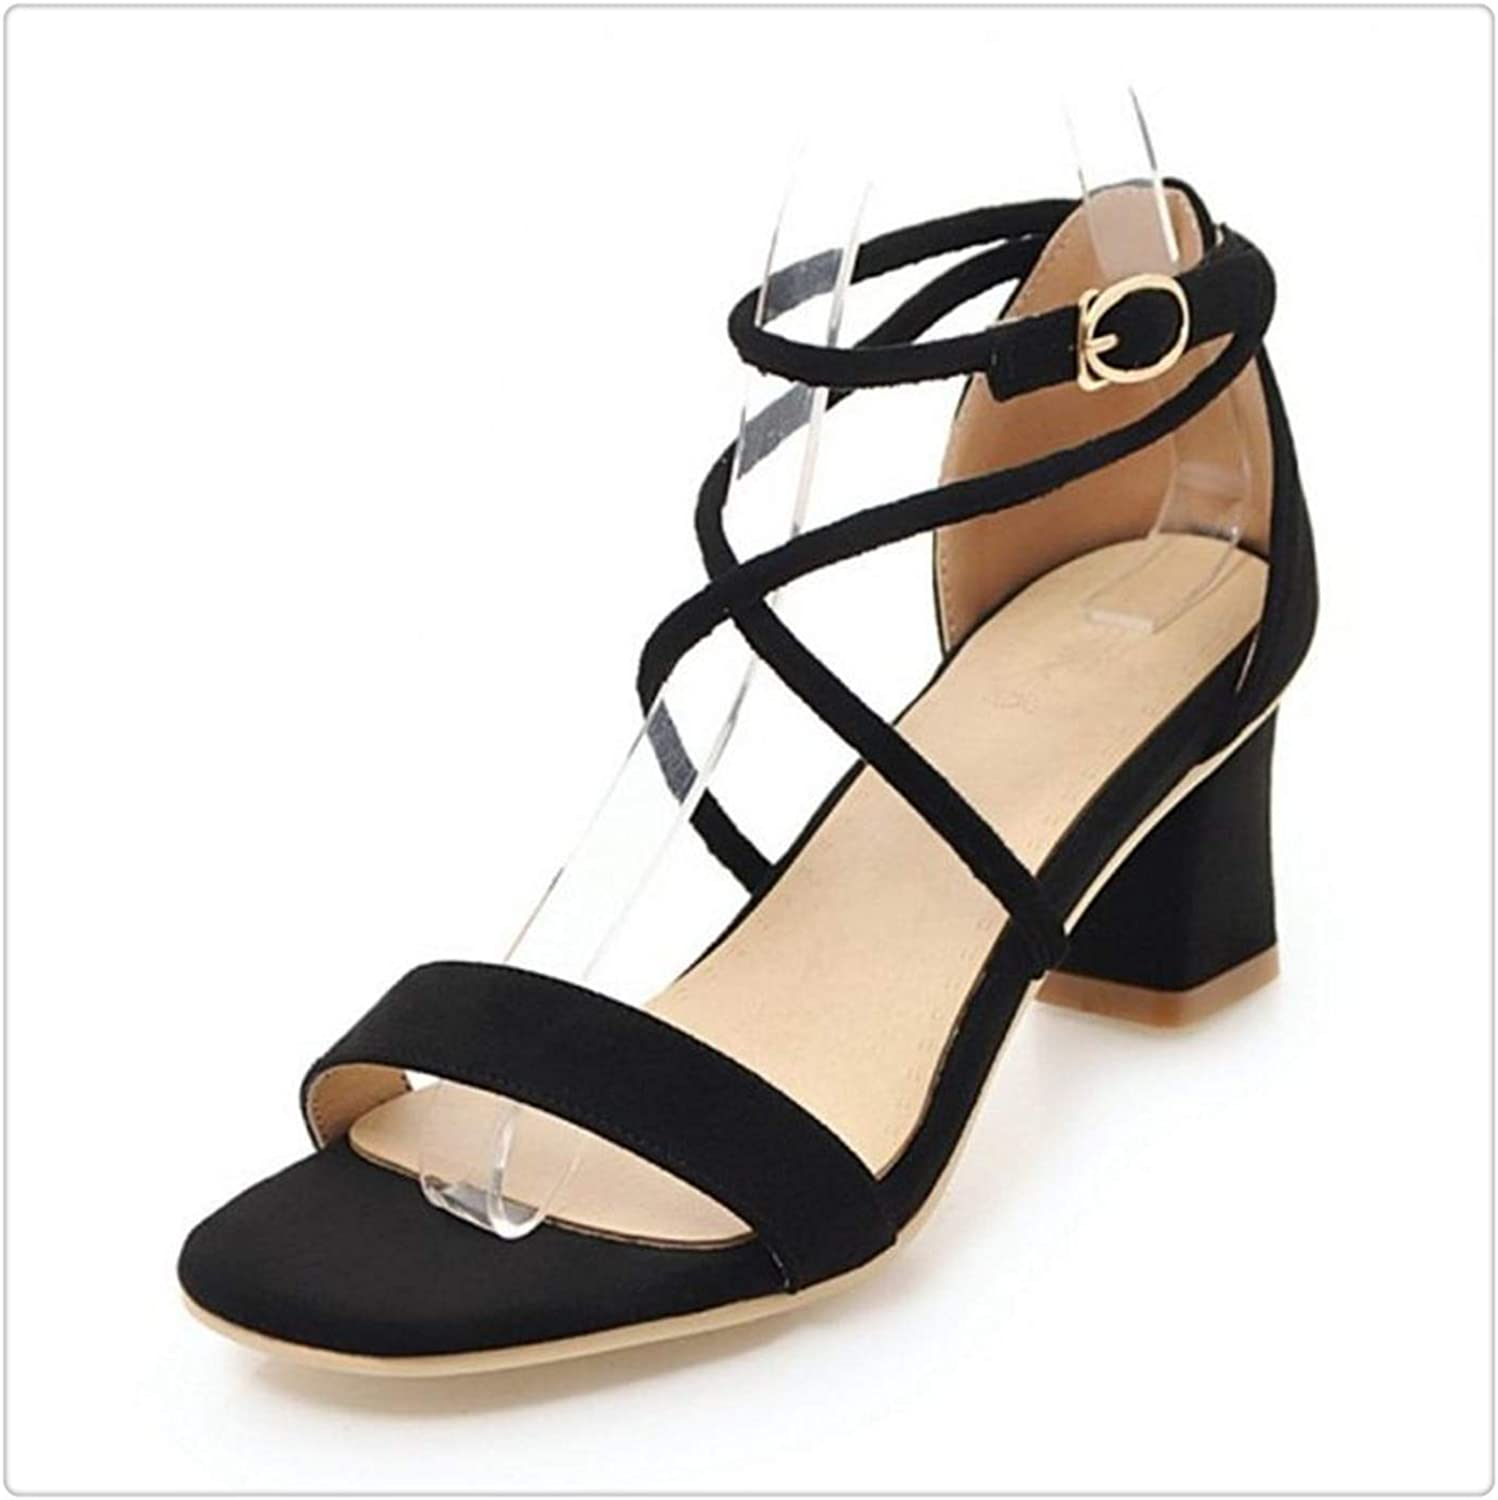 KKEPO& 4 colors Size 33-43 Vintage Women High Heel Sandals Women Ankle Strap Open Toe Thick Heel Sandals Summer Club shoes Black 2 9